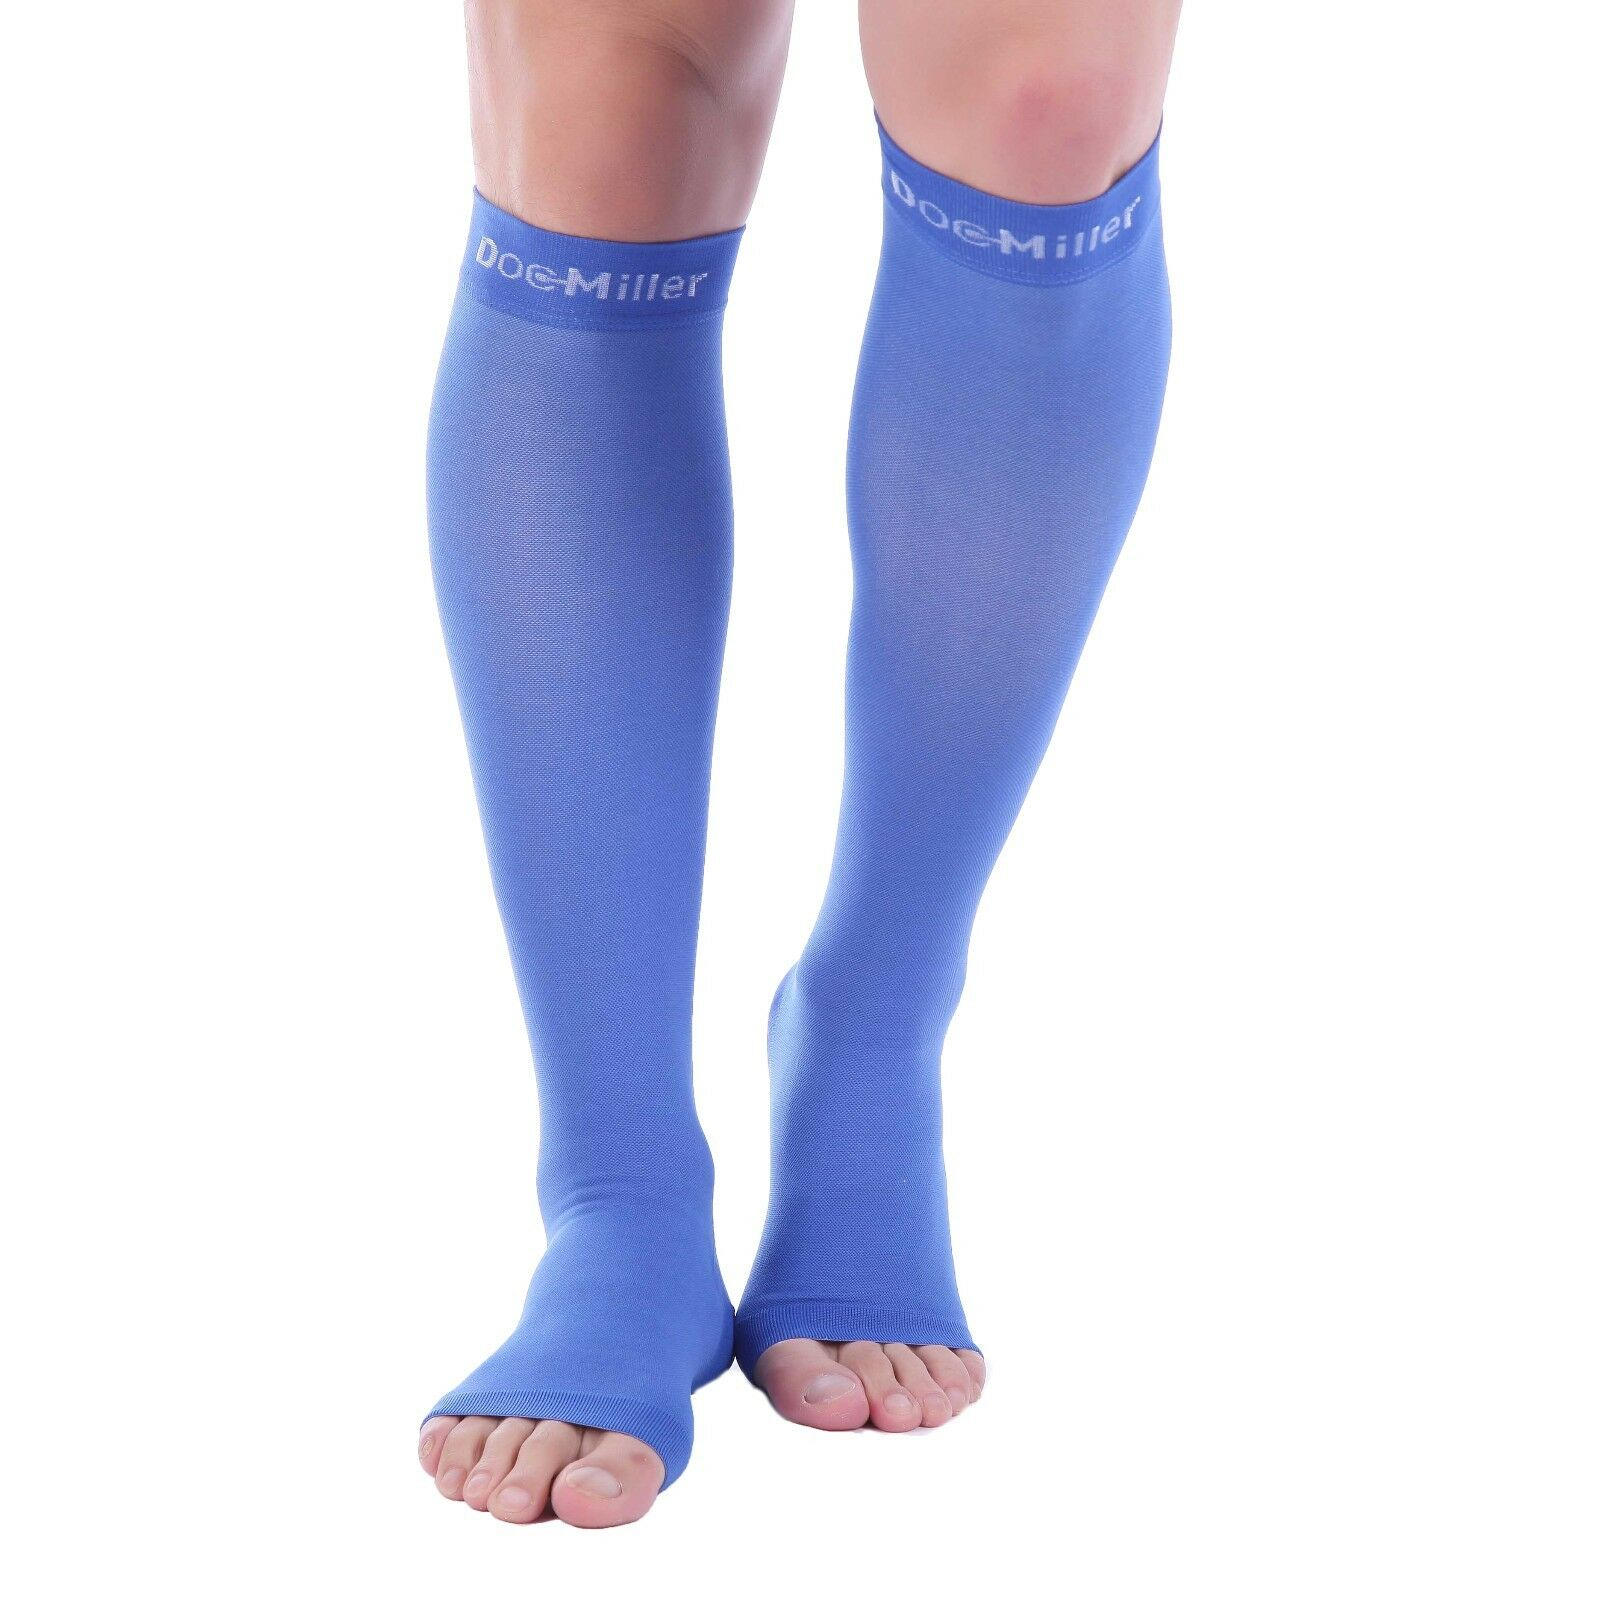 71e27f8f9 Details about Doc Miller Open Toe Compression Sleeve 30-40 mmHg Varicose  Veins BLUE